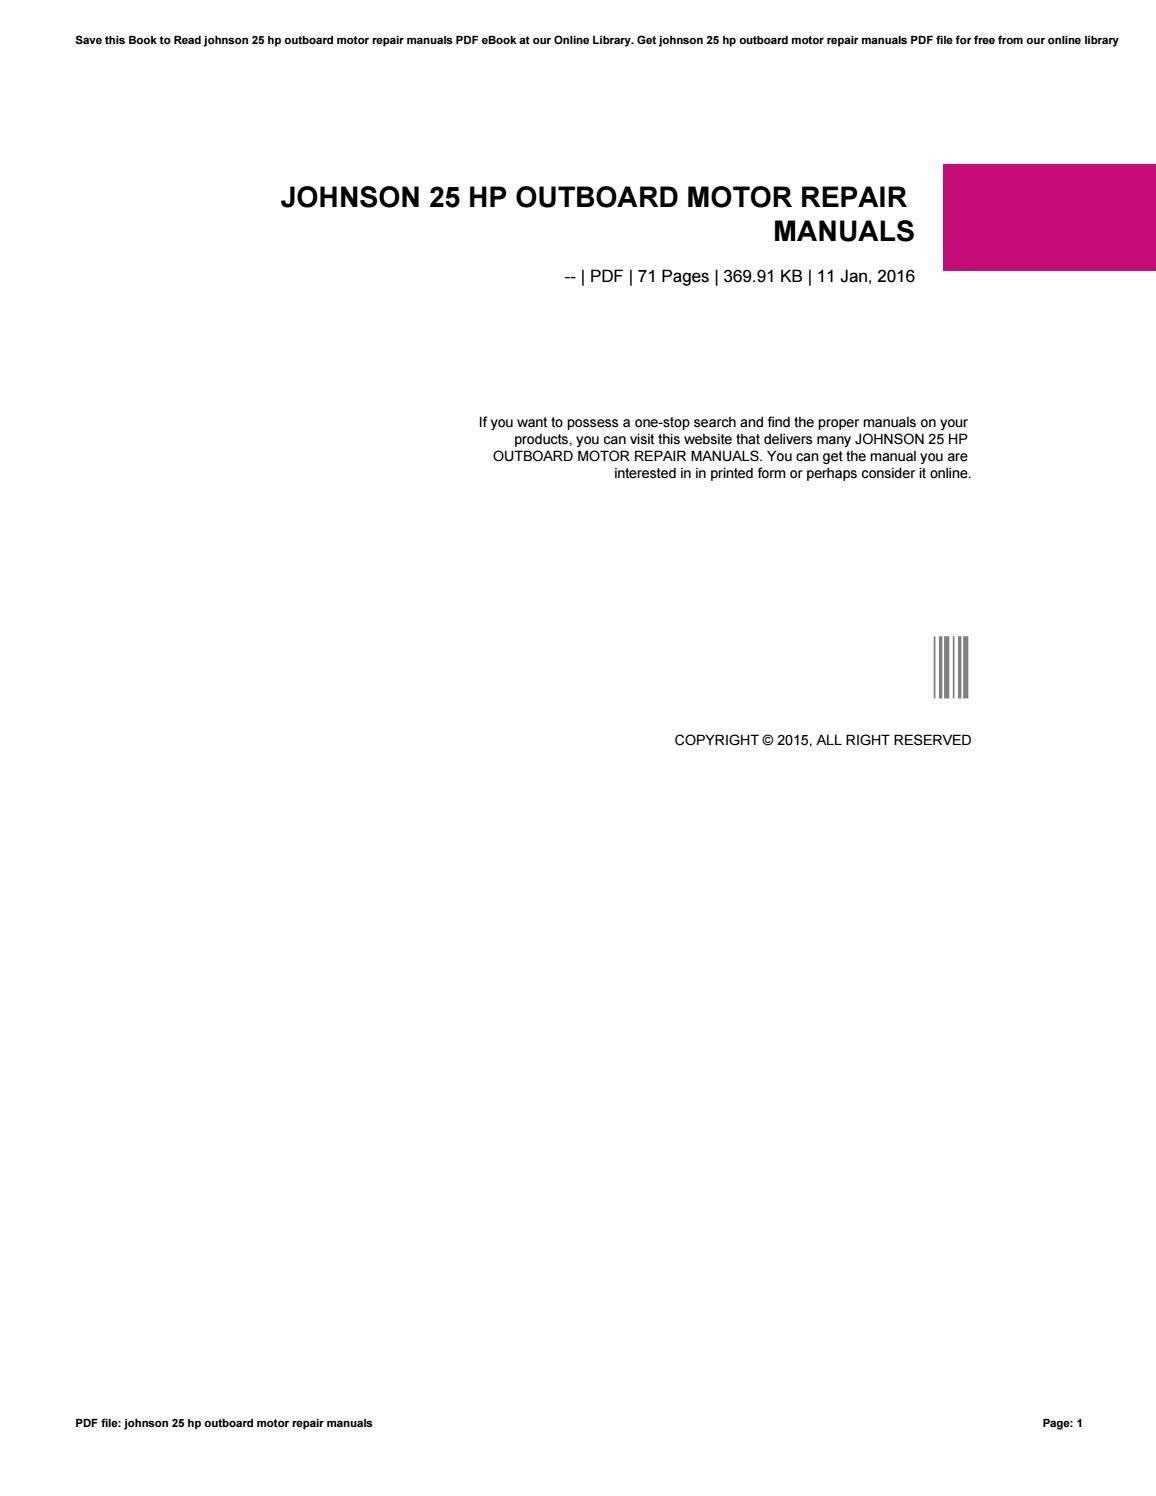 johnson 25 hp outboard manual ebook